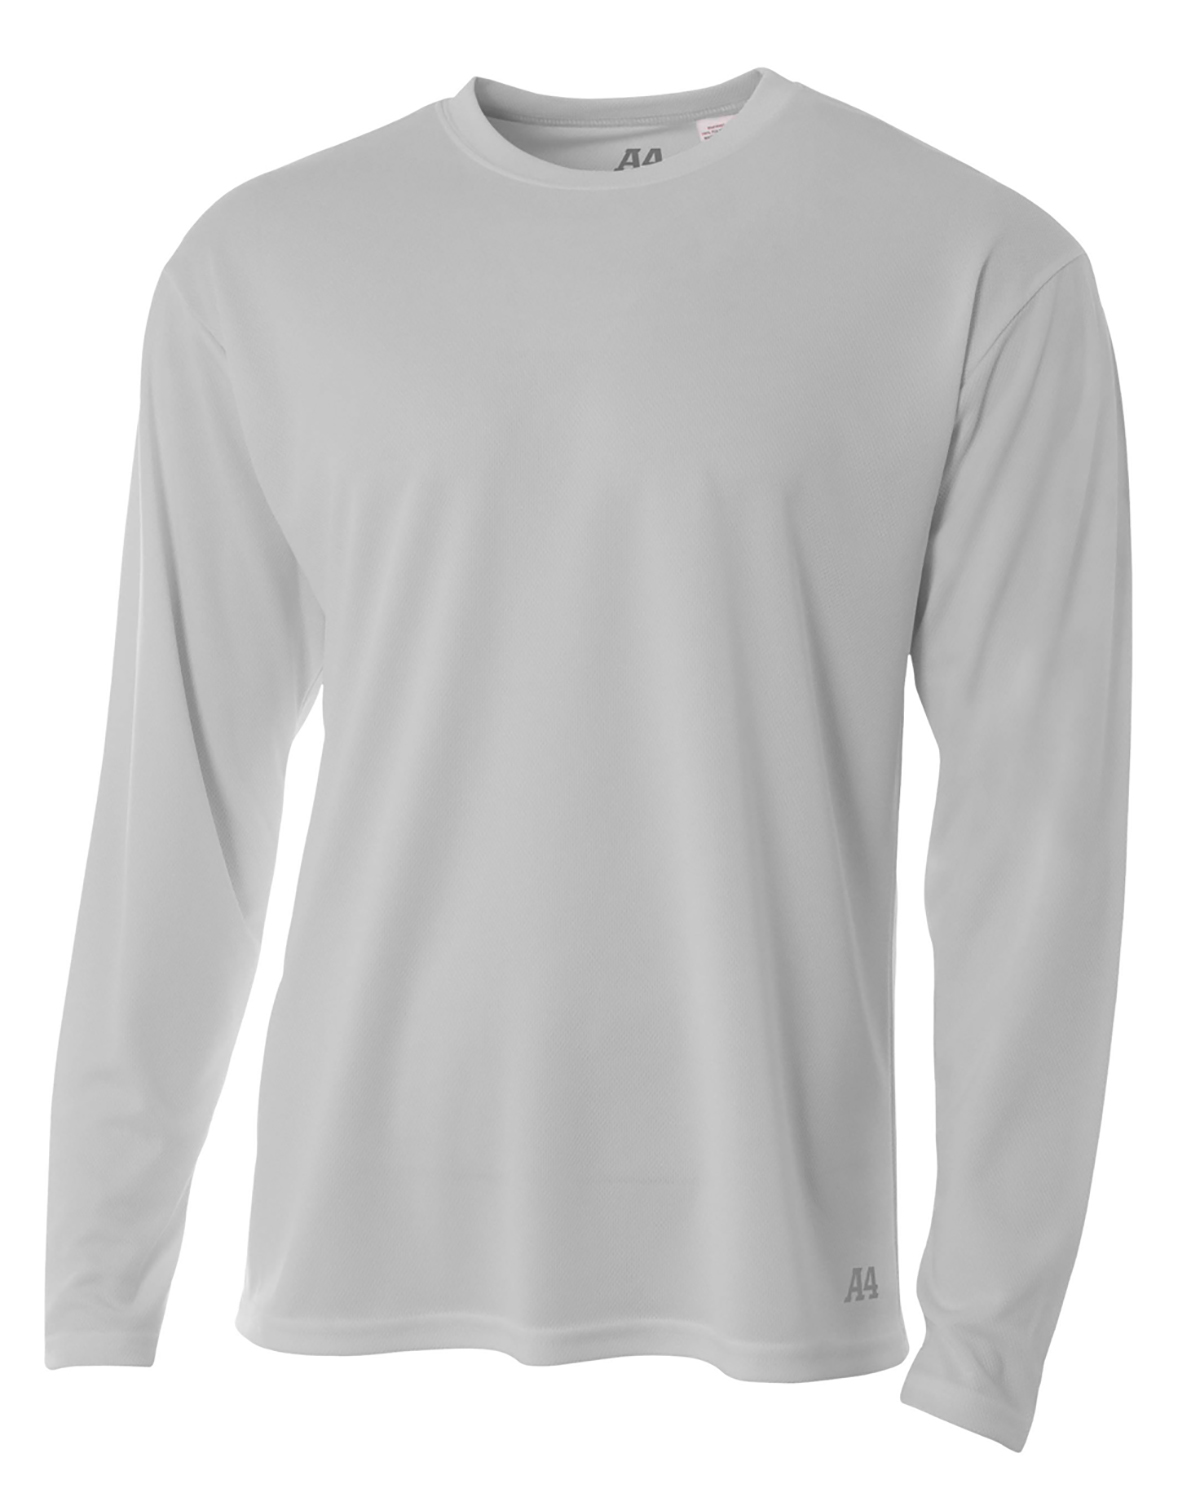 A4 Drop Ship N3253 - Men's Long Sleeve Crew Birds Eye Mesh T-Shirt